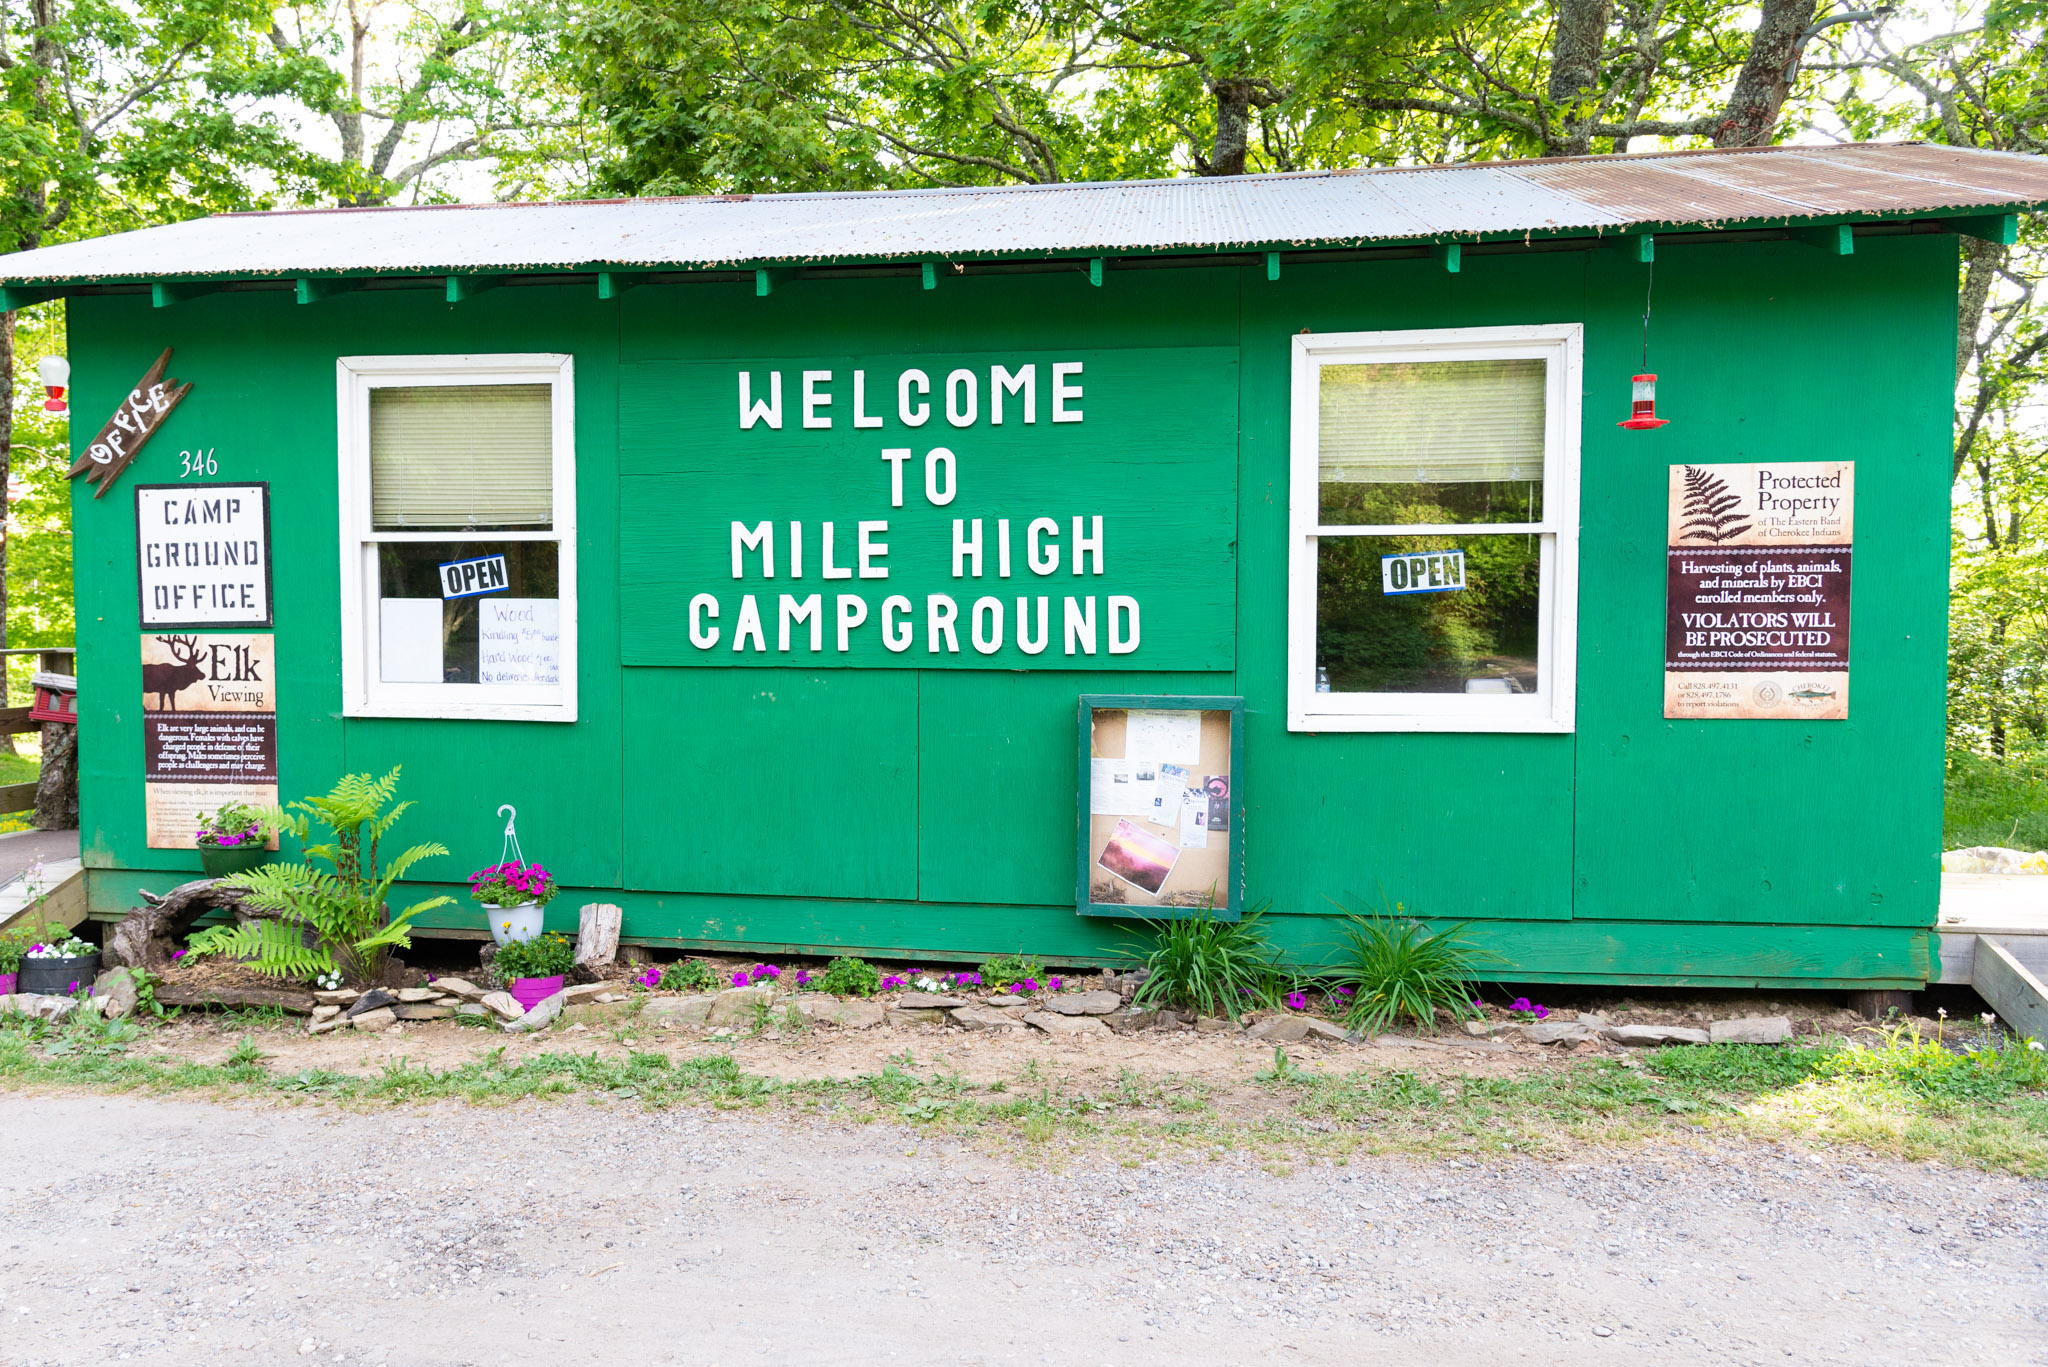 About us - Mile High Campground was established in 1998 by Glen J. Bradley, Jr., an enrolled member of the Eastern Band of Cherokee Indians. Click below to learn more.